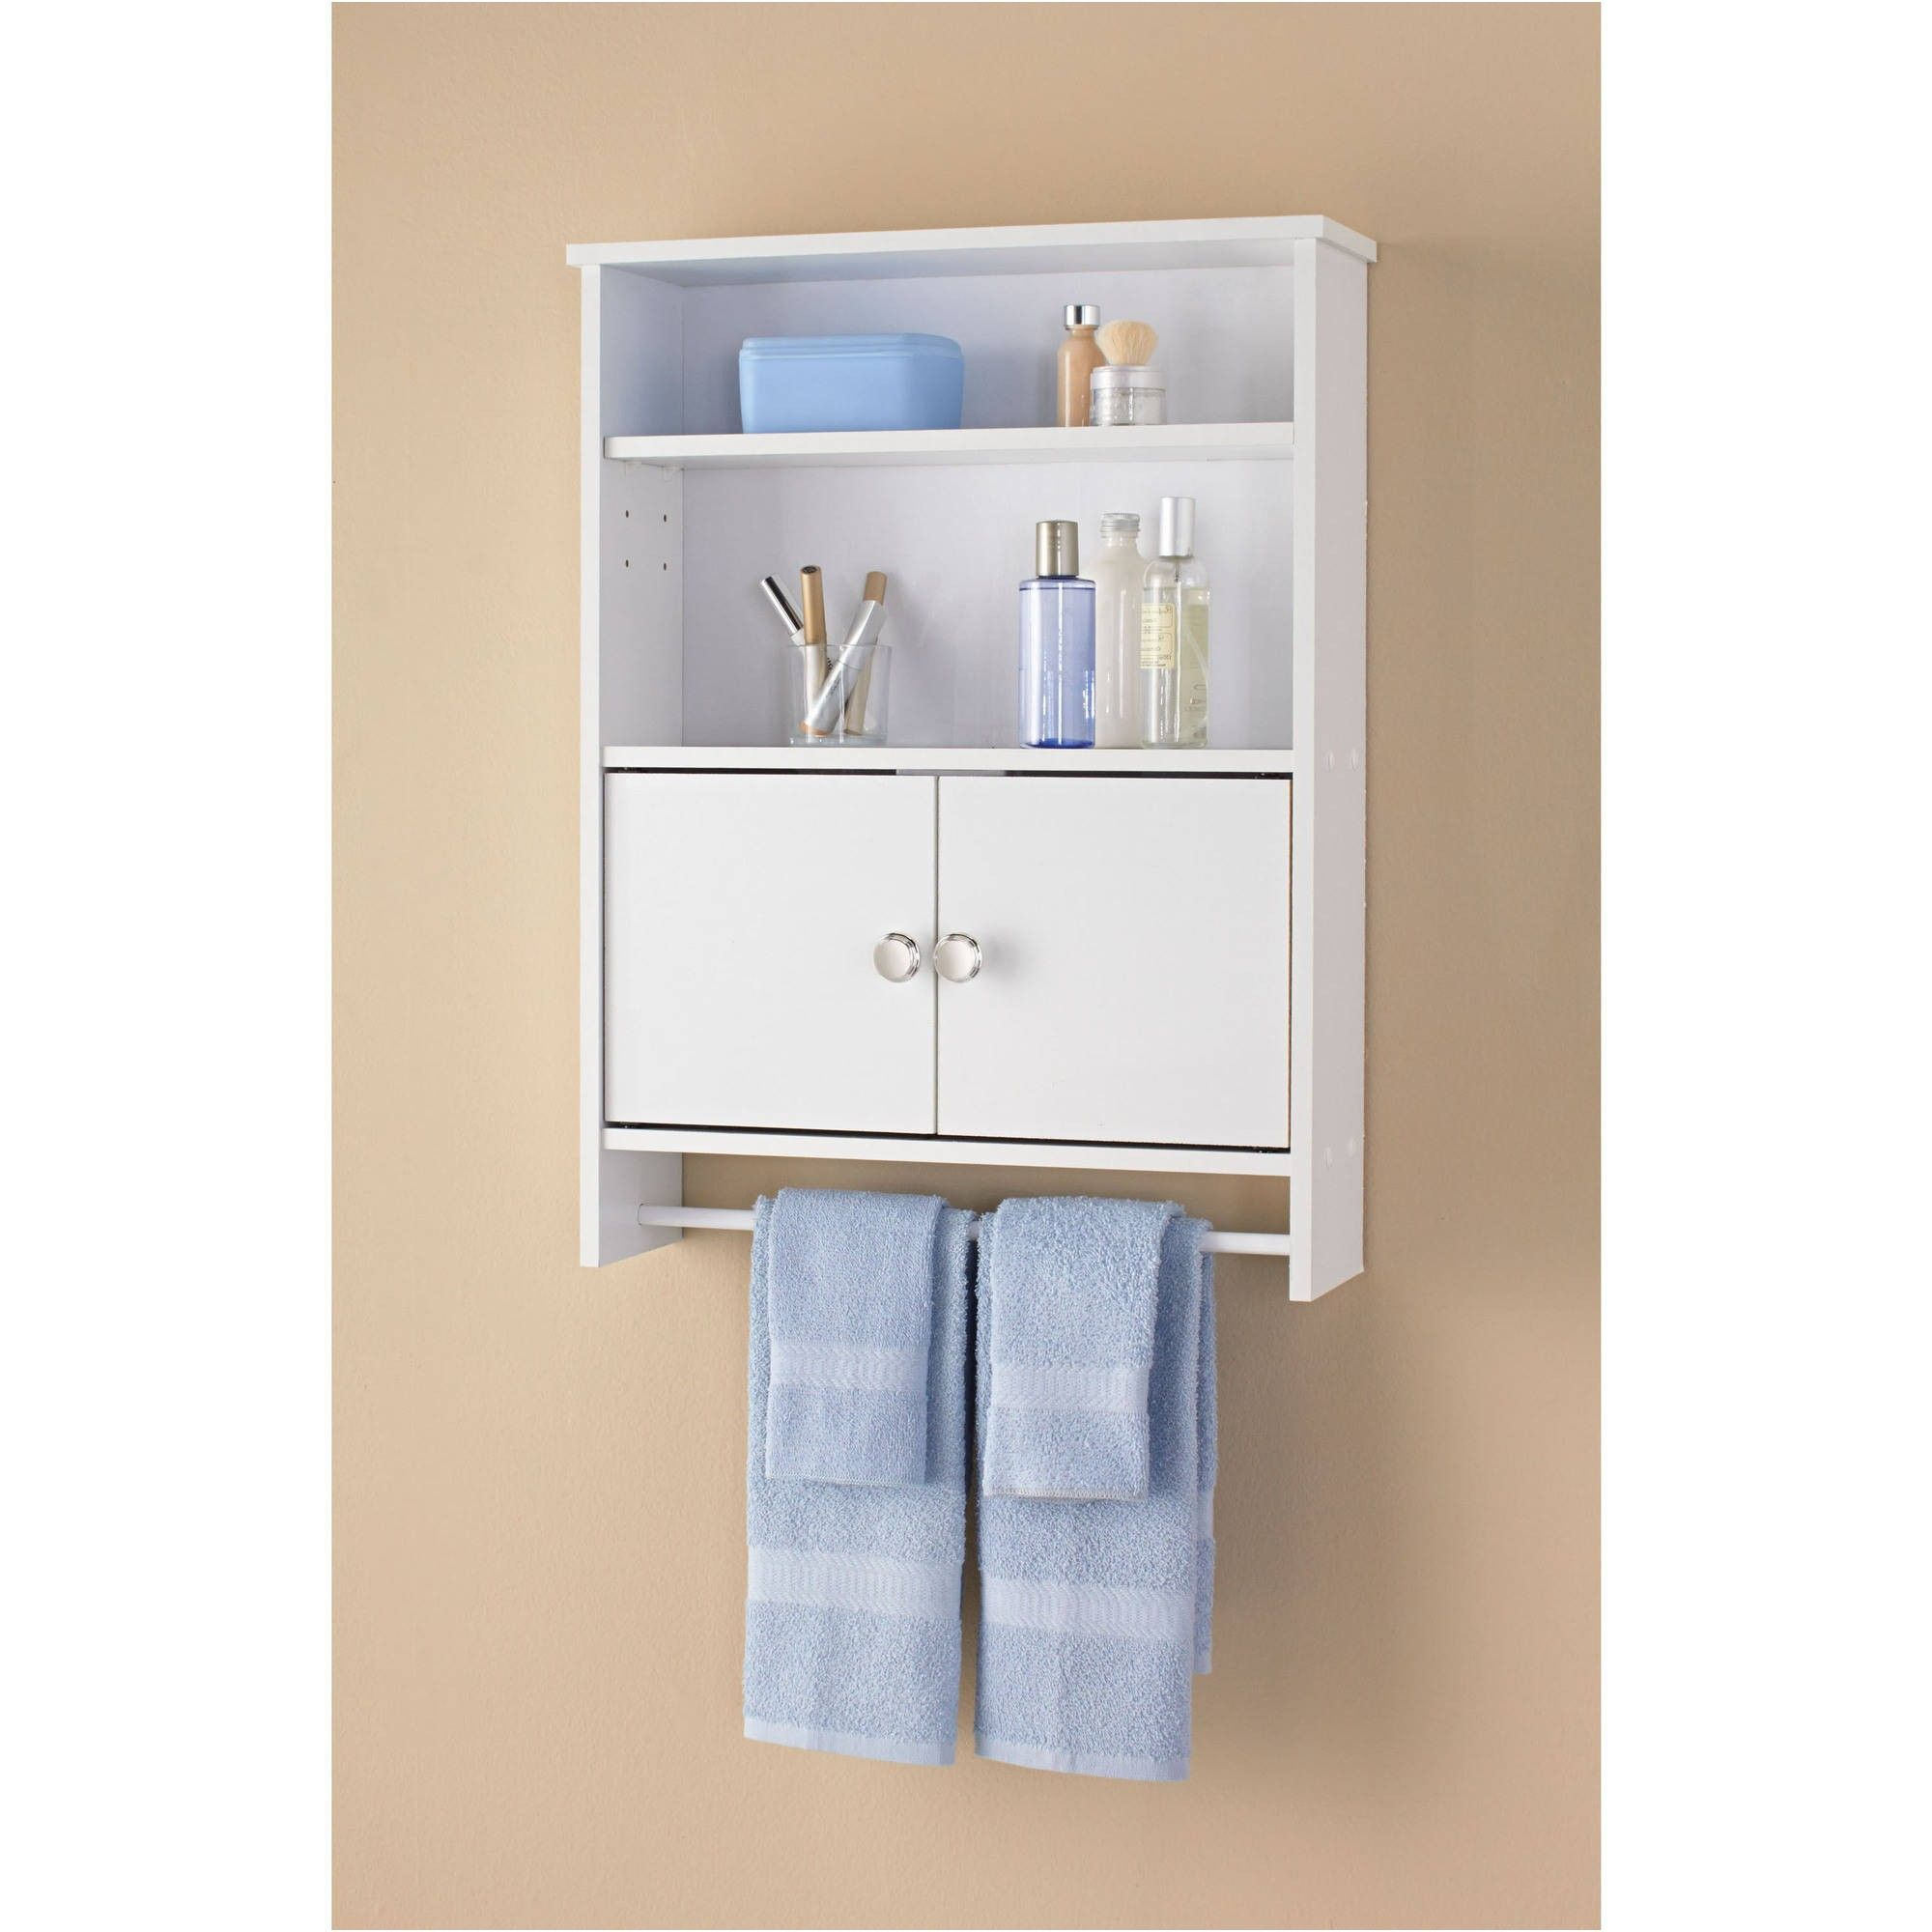 Mainstays 2 Door Wood Wall Cabinet White Walmart from ...